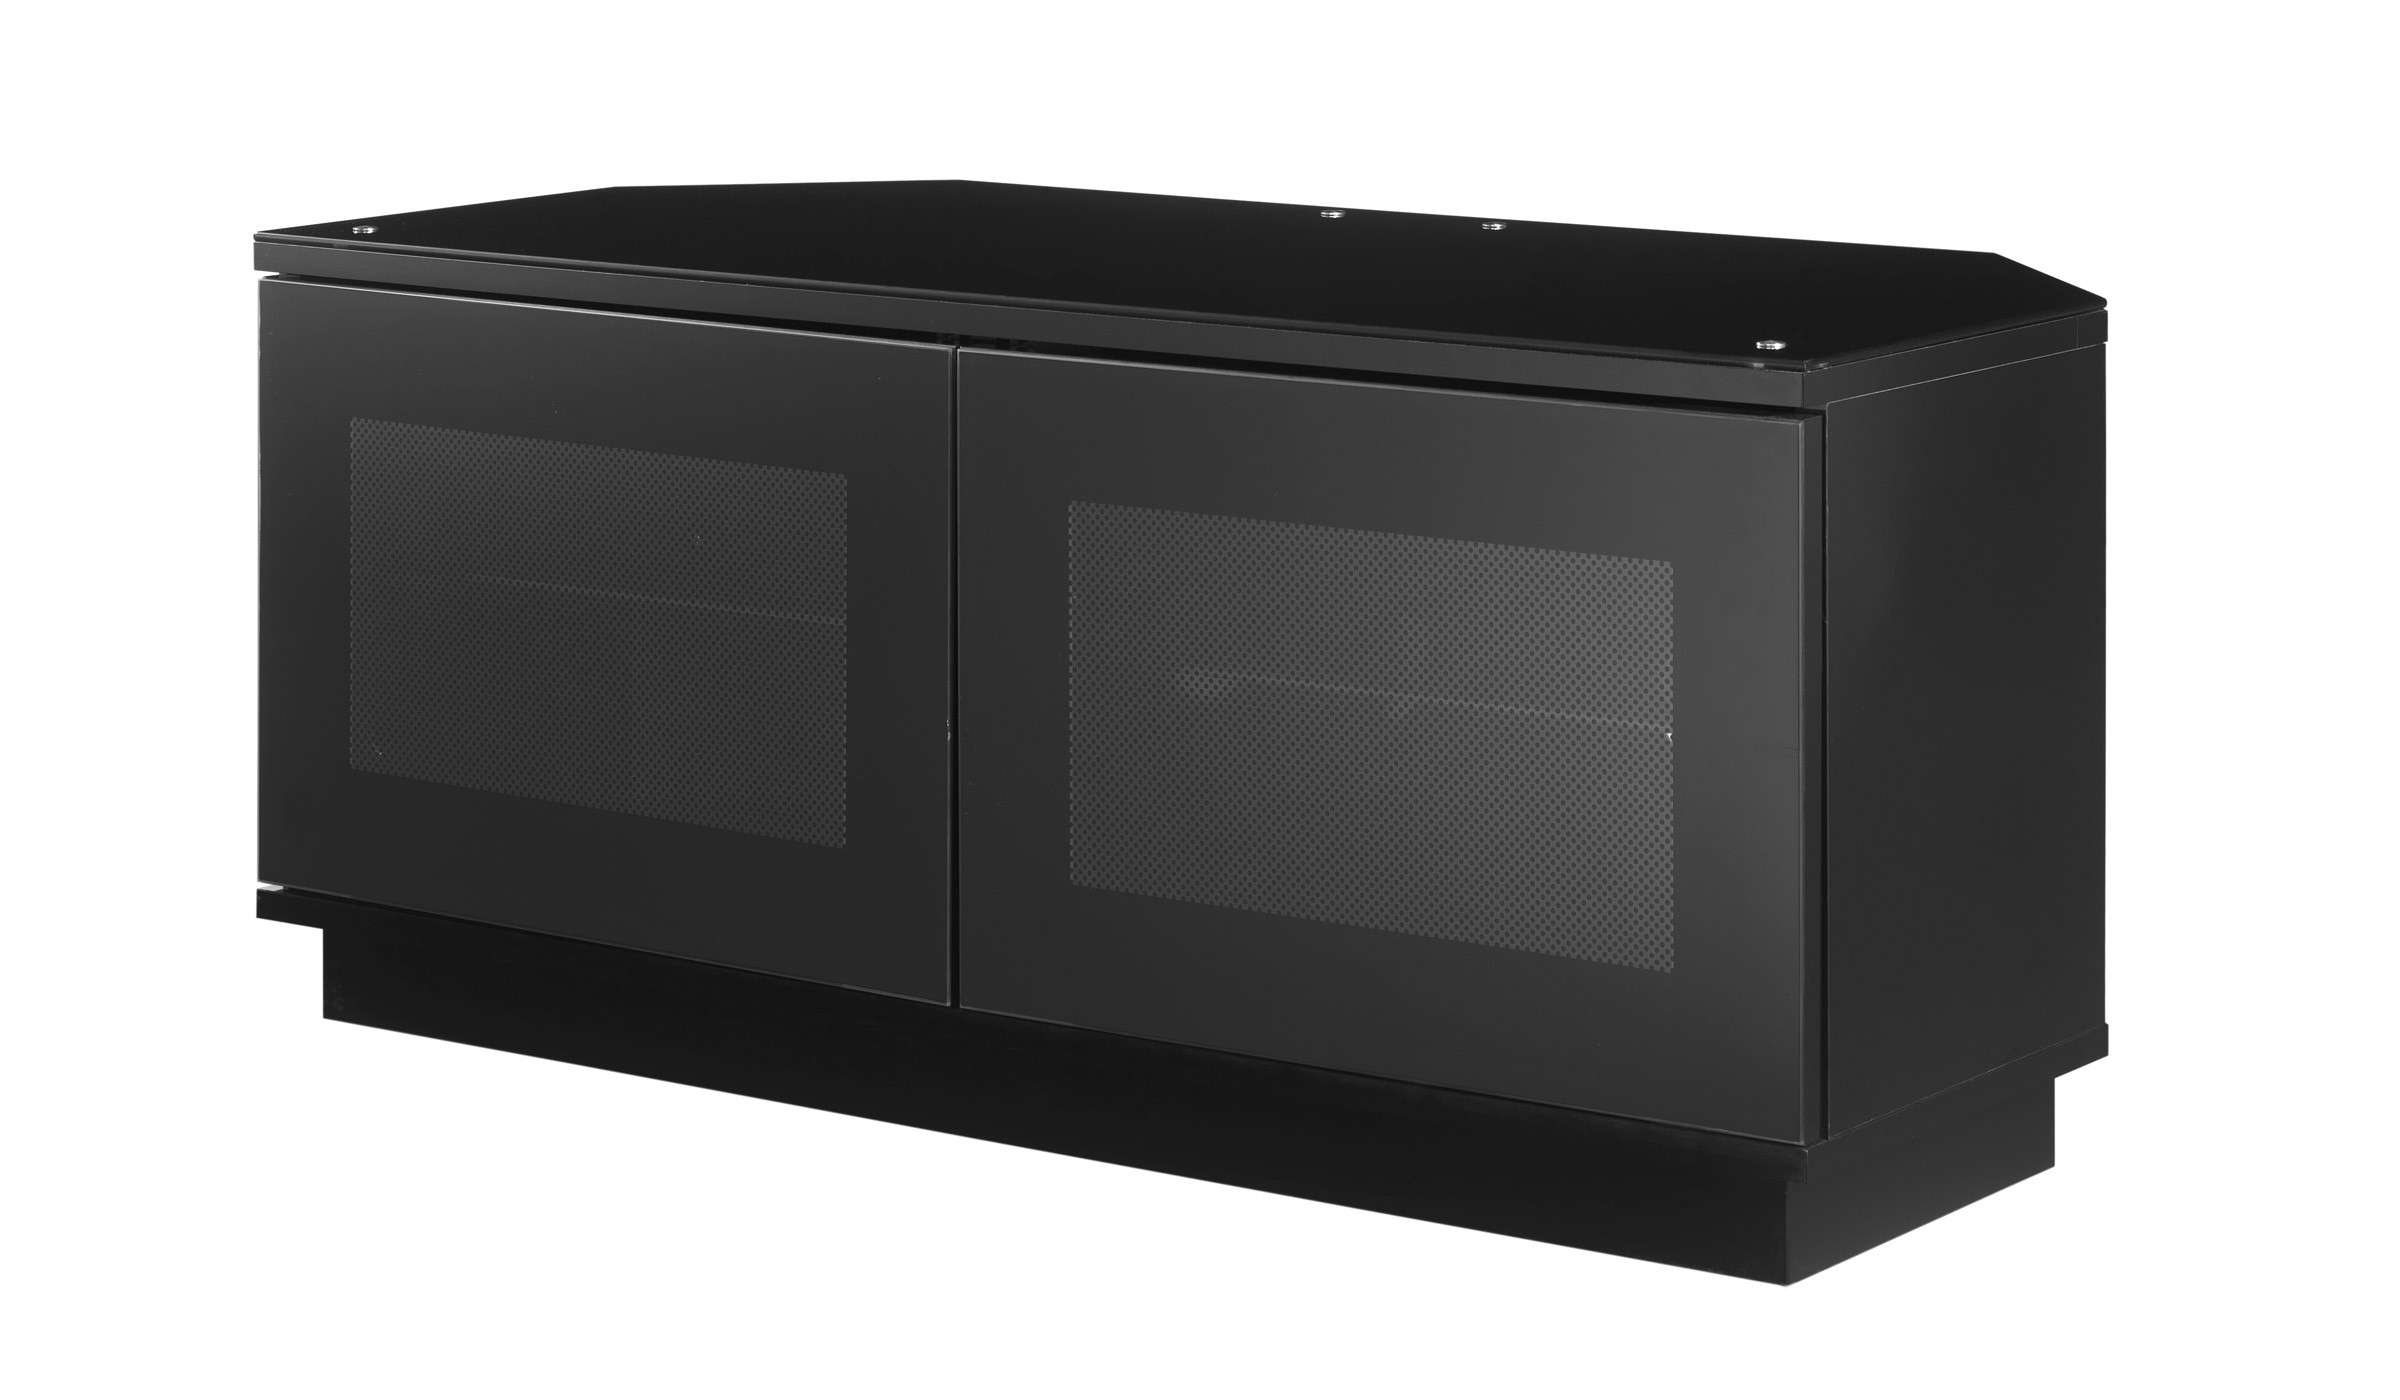 Small Black Tv Stand Cabinet With Door For Corner – Decofurnish For Black Wood Corner Tv Stands (View 7 of 15)